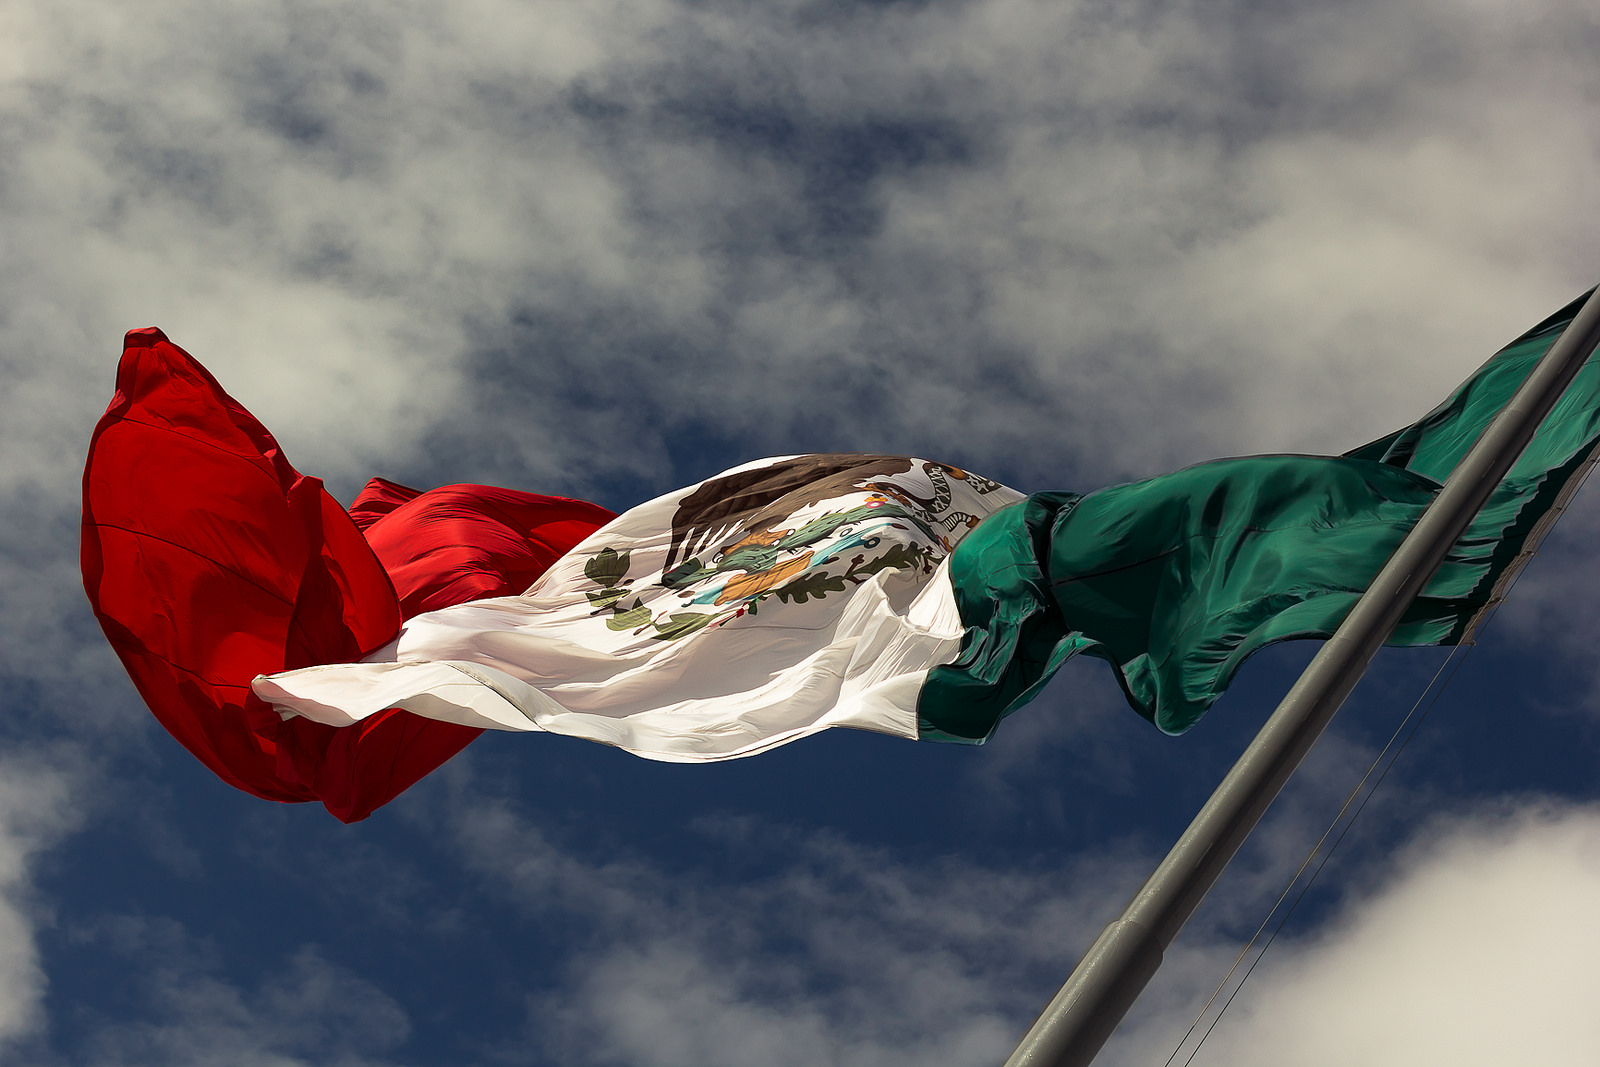 Mexico: the connection between disaster, hope, and a lanyard